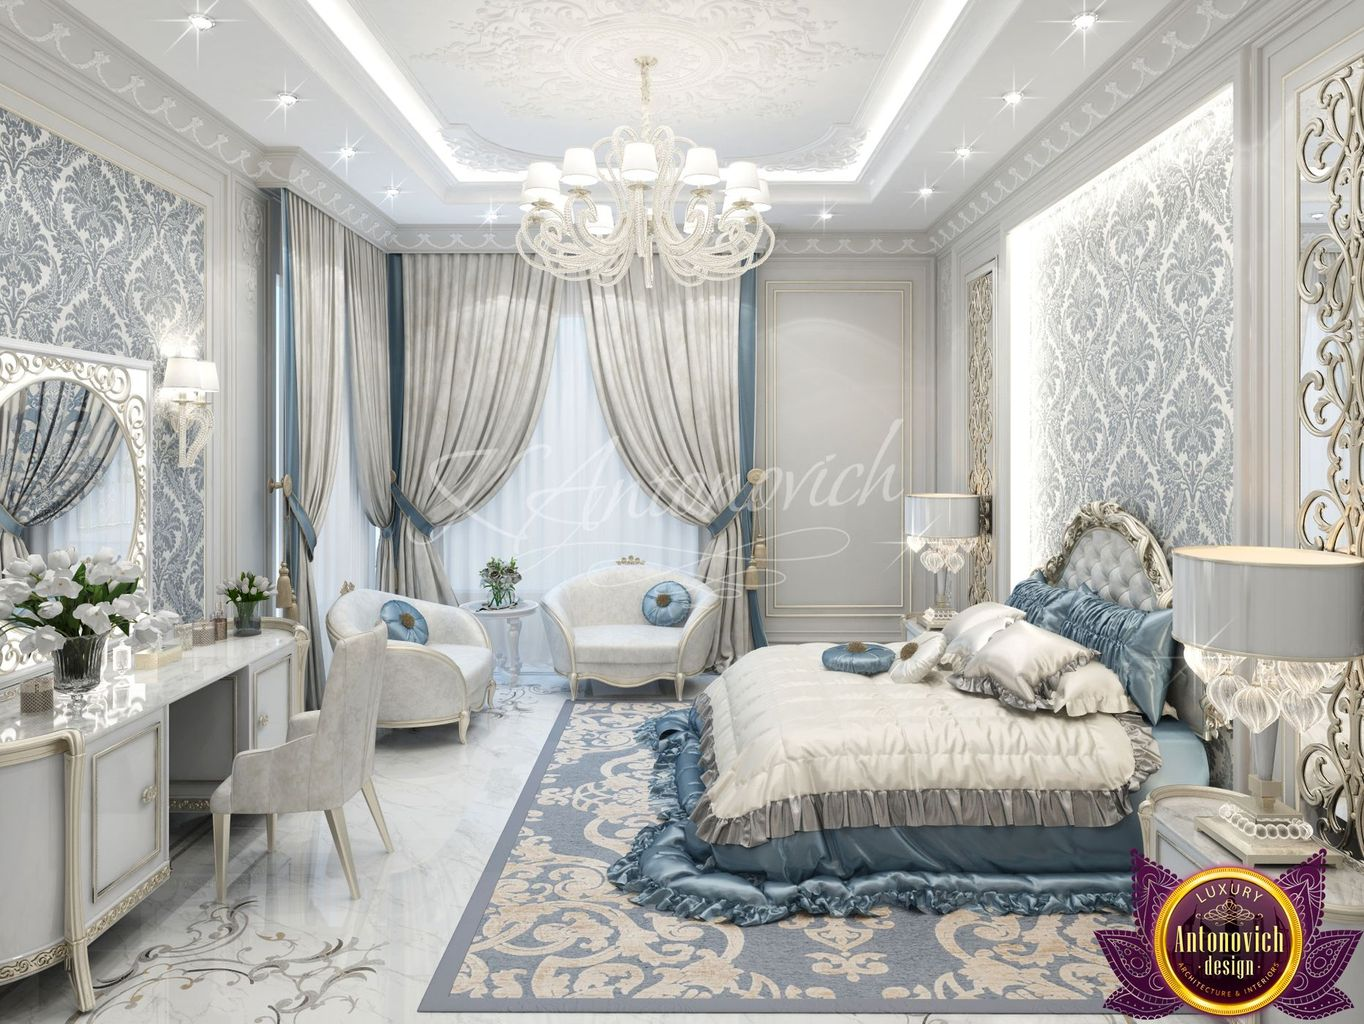 Luxury antonovich design uae for Bed dizain image